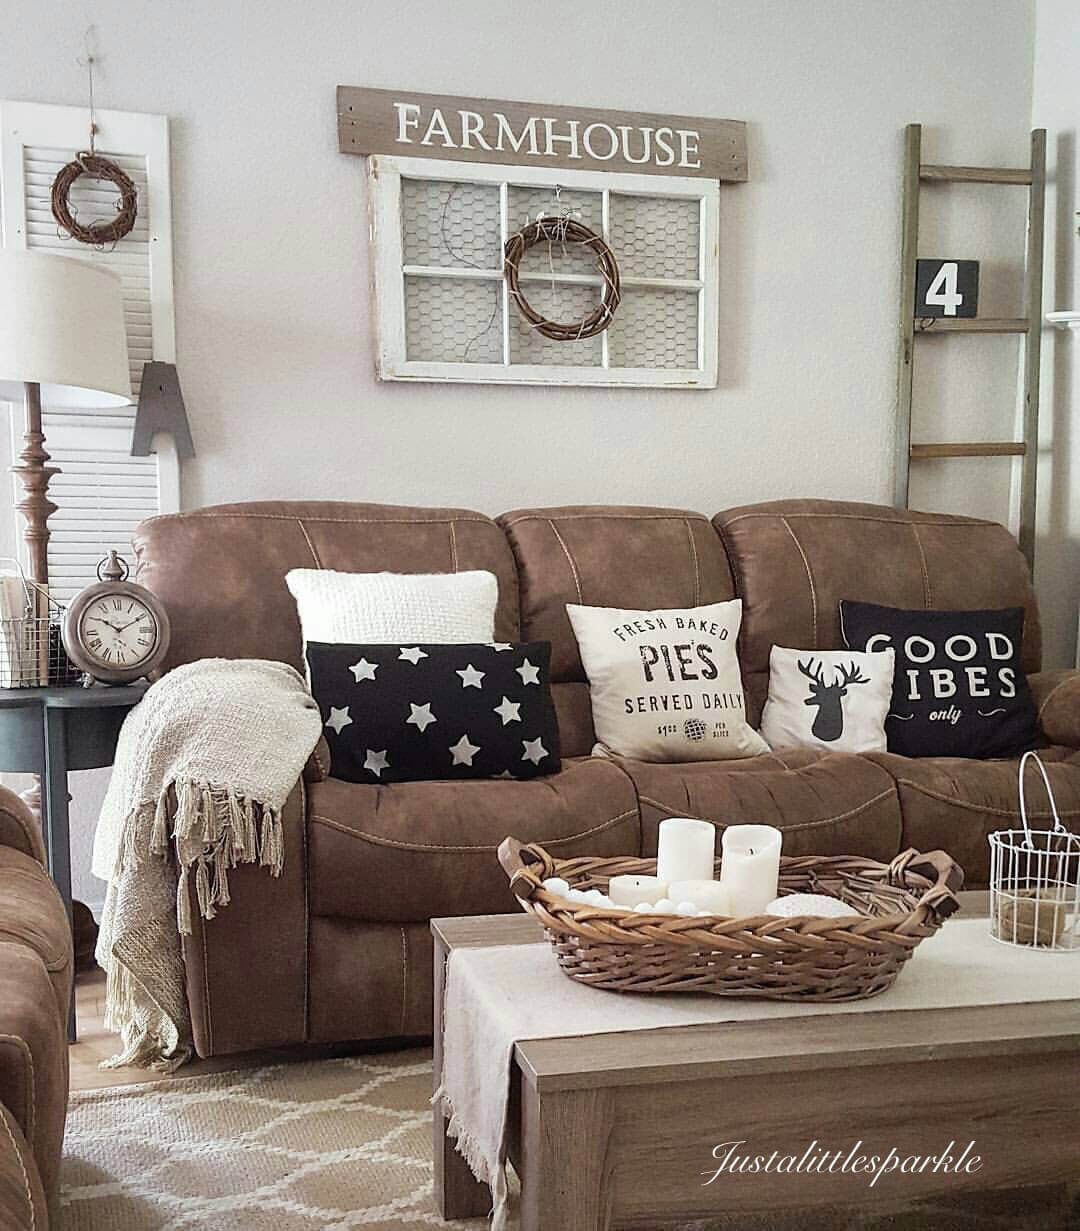 Attractive Microfiber Couch Farmhouse Living Room Decor Ideas